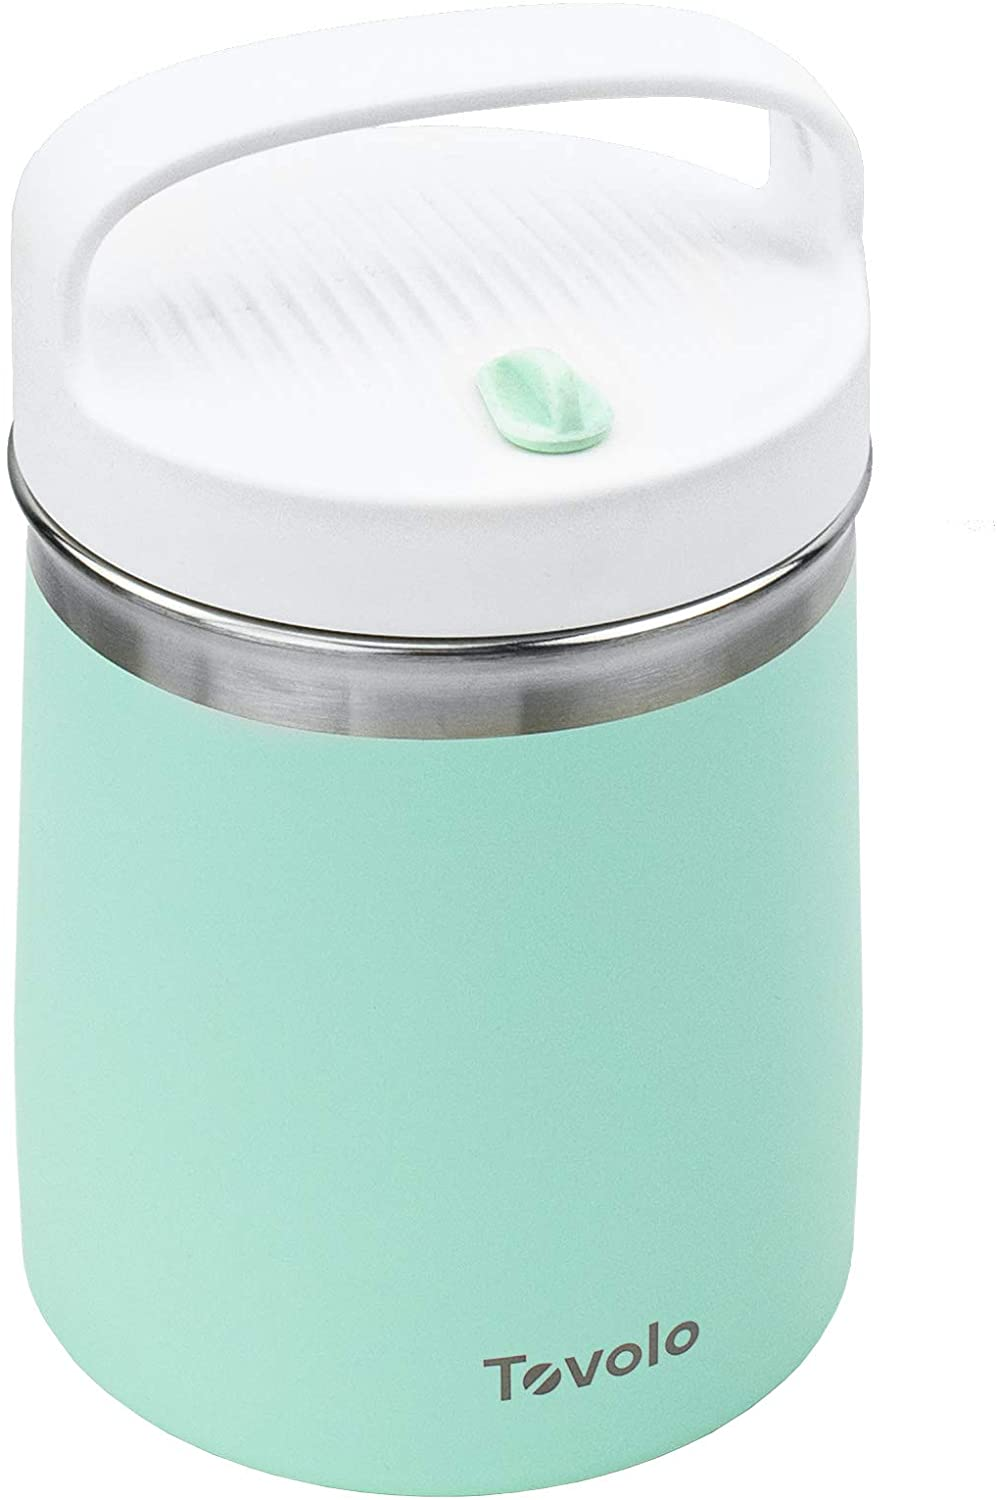 Tovolo 2 Quart Stainless Steel Traveler, Double-Wall Vacuum-Insulated Food Container, 2 Qt. Food Storage & Ice Cream Container, Easy-Carry Handle, Travel Mug for Hot Food & Cold Ice Cream, Mint